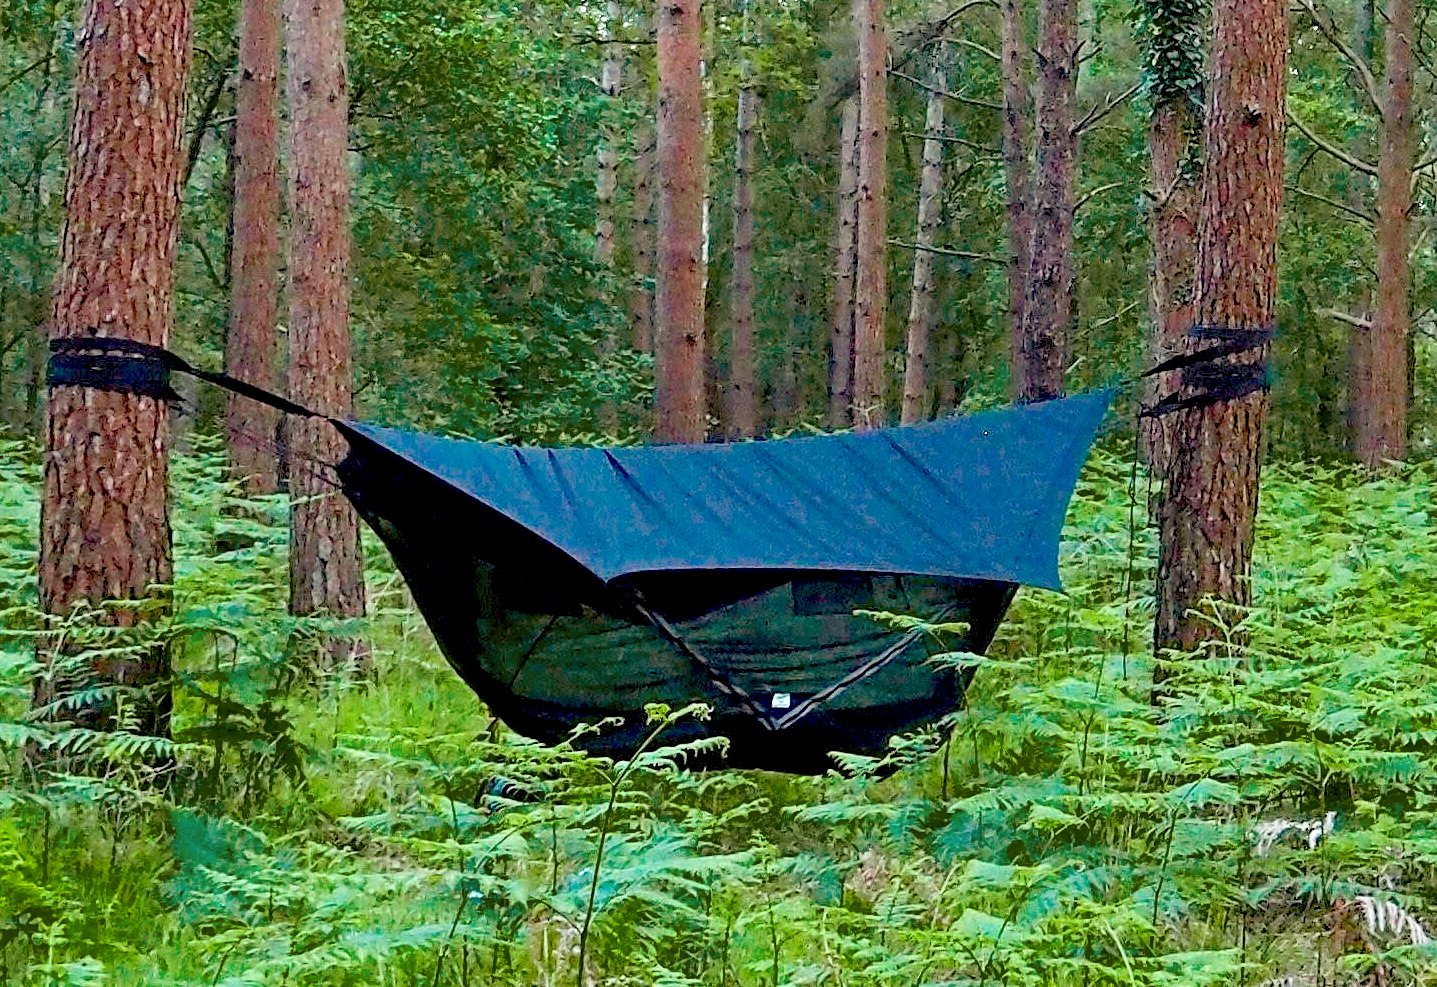 Hammock Bliss Sky Tent 2 - A Revolutionary 2 Person Hammock Tent - Waterproof and Bug Proof Hanging Tent Provides Spacious and Cozy Shelter For 2 Camping Hammocks - Embrace Hammock Camping Comfort by Hammock Bliss (Image #9)